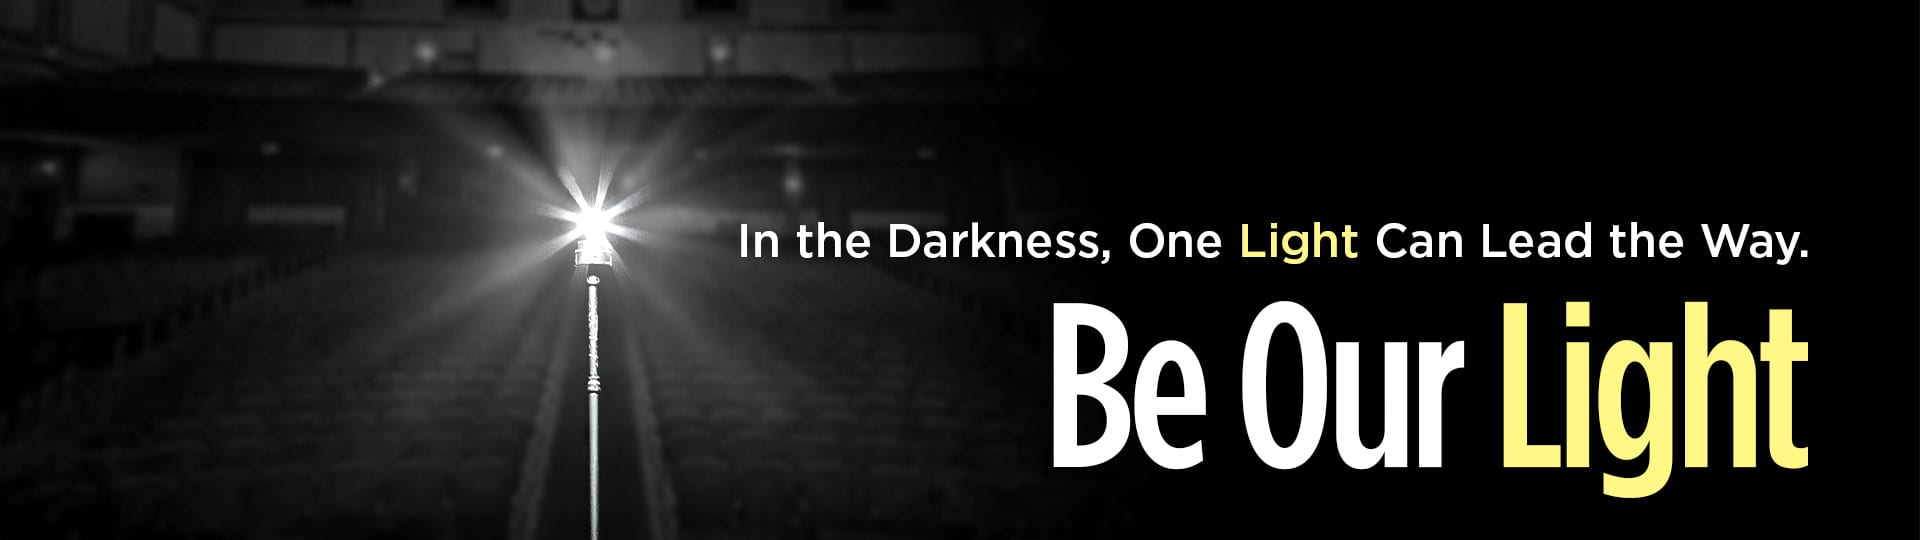 Be Our Light Banner